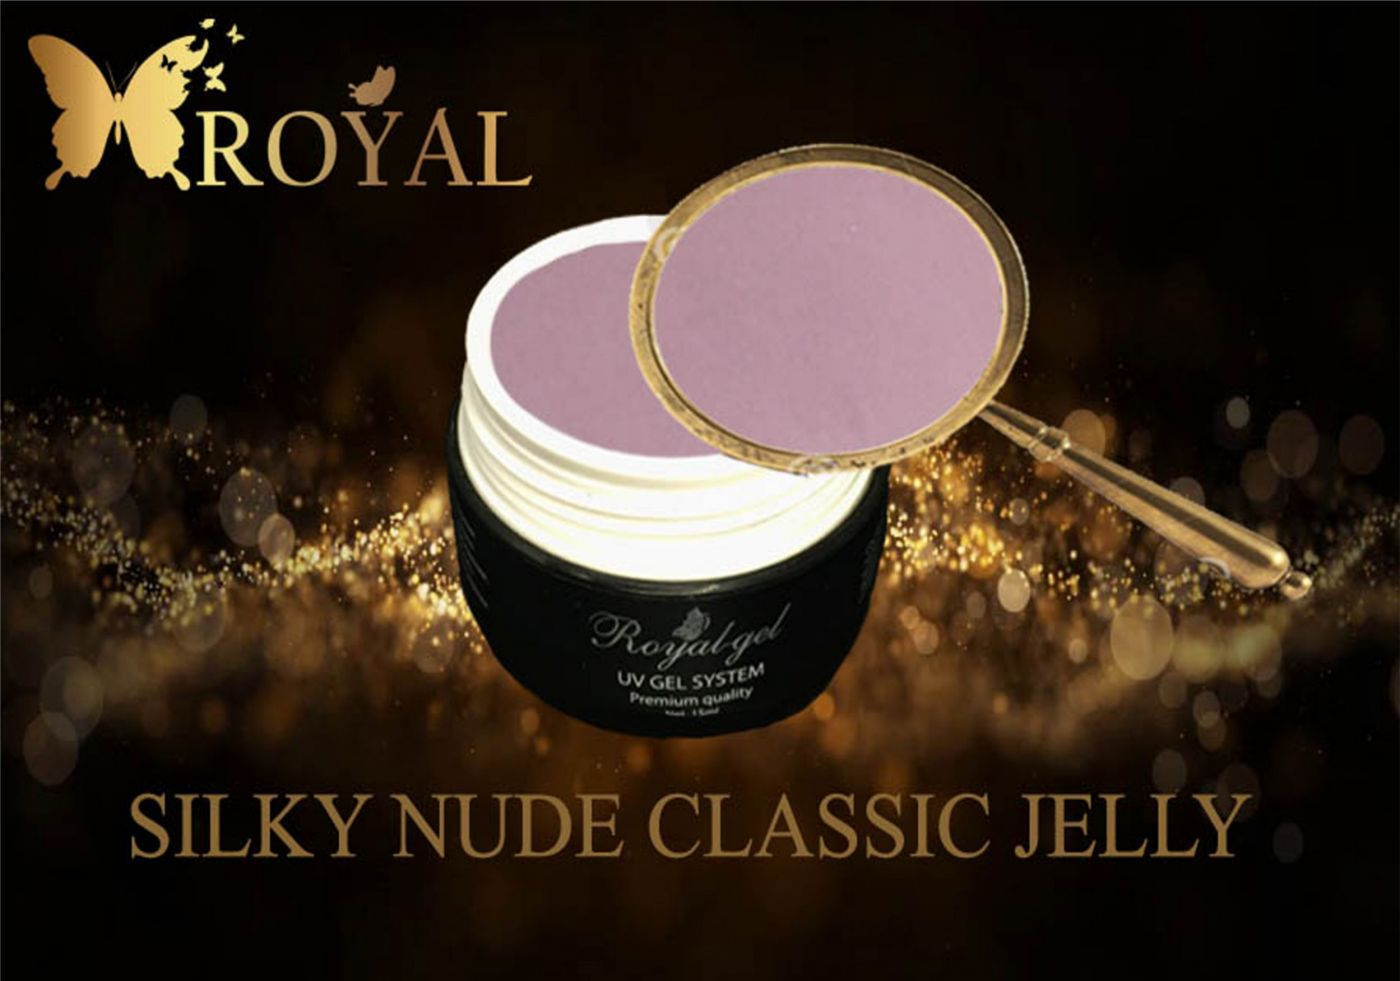 SILKY NUDE CLASSIC JELLY ROYAL GEL